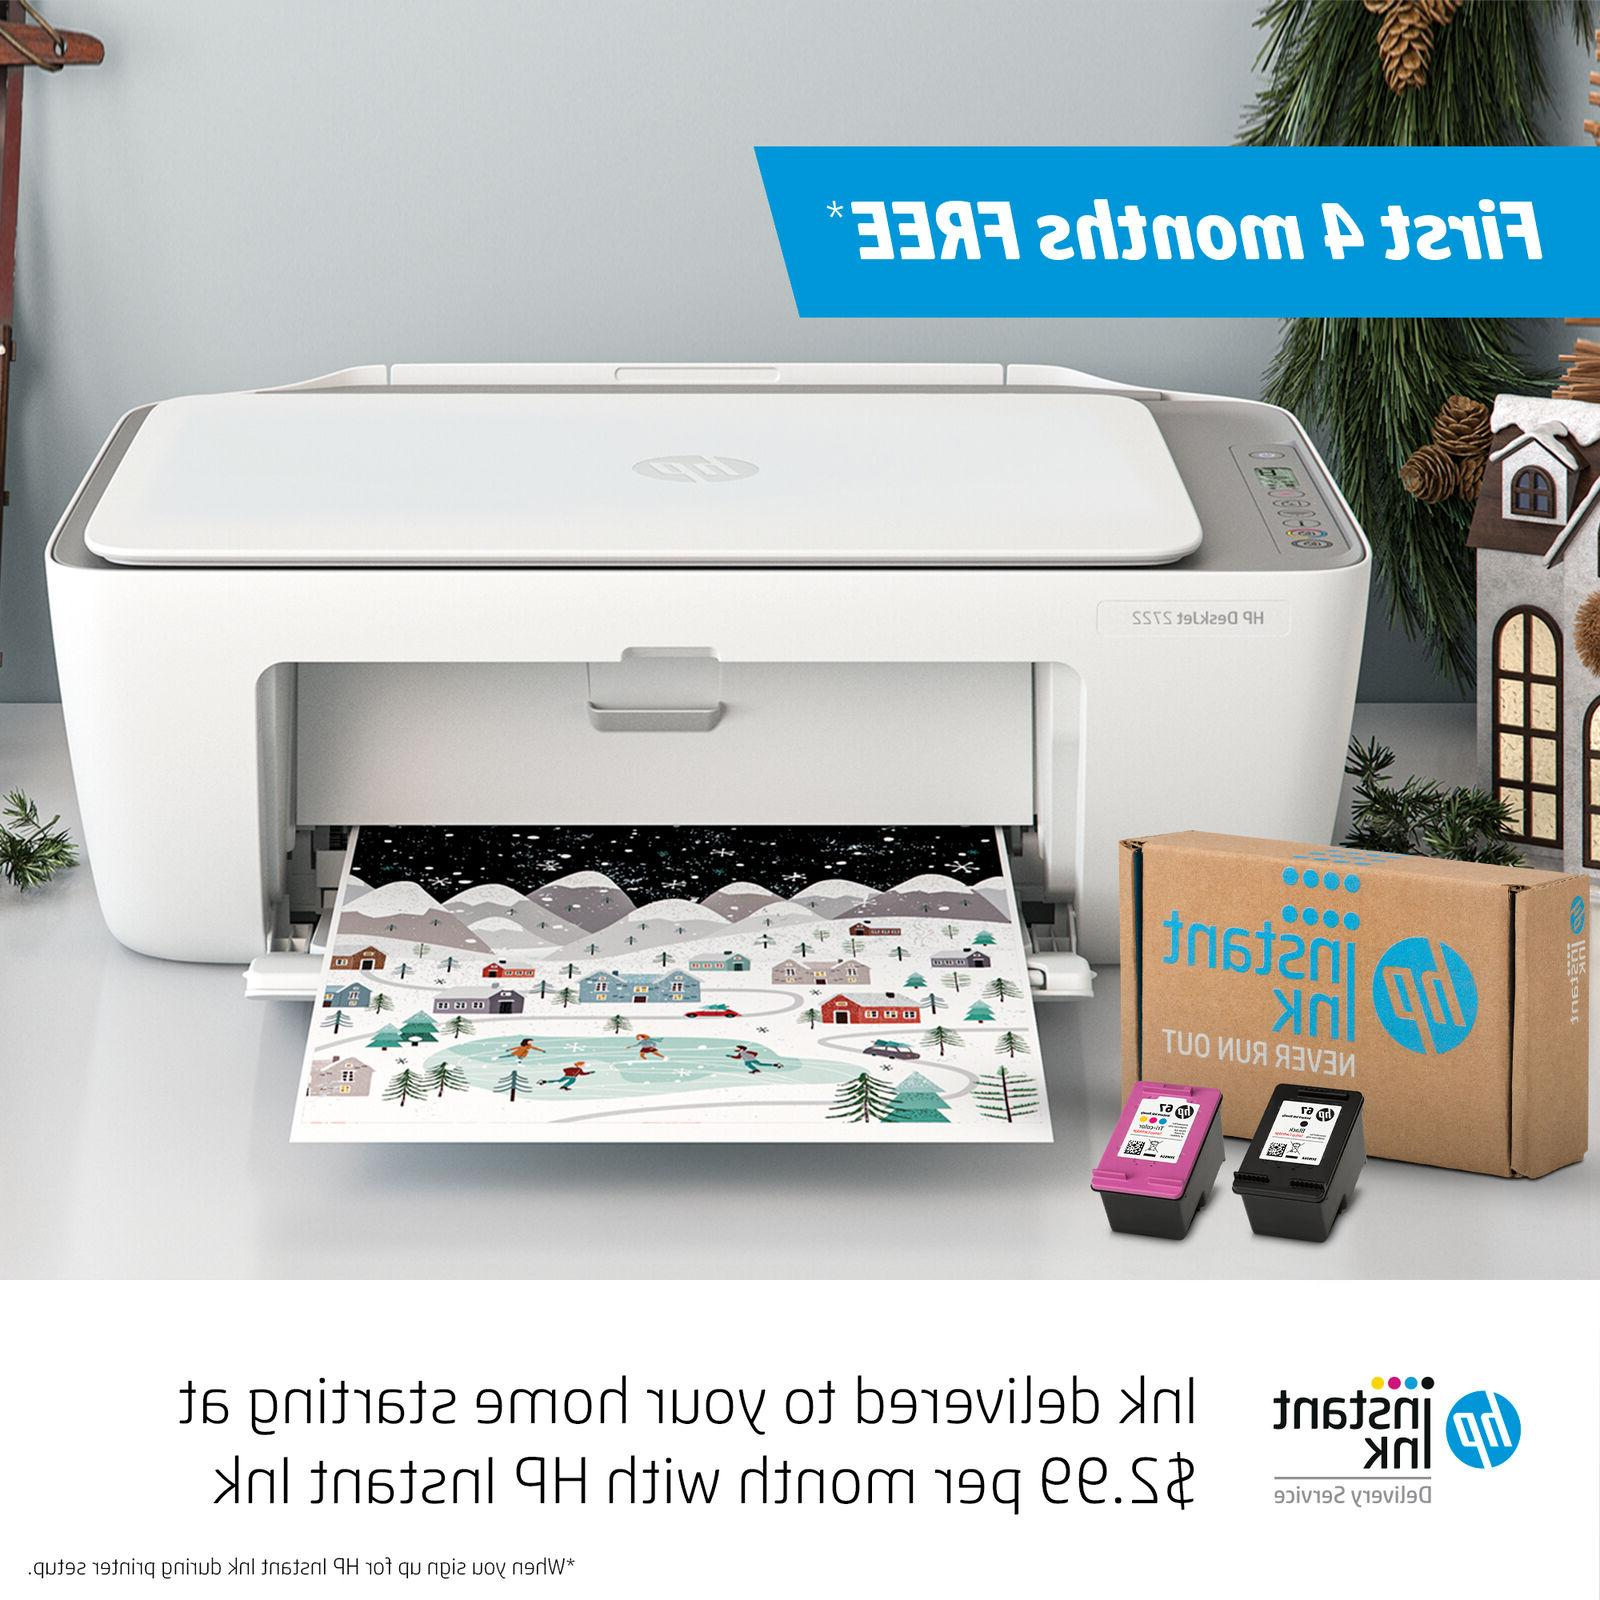 All-in-One Printer – Ink Ready